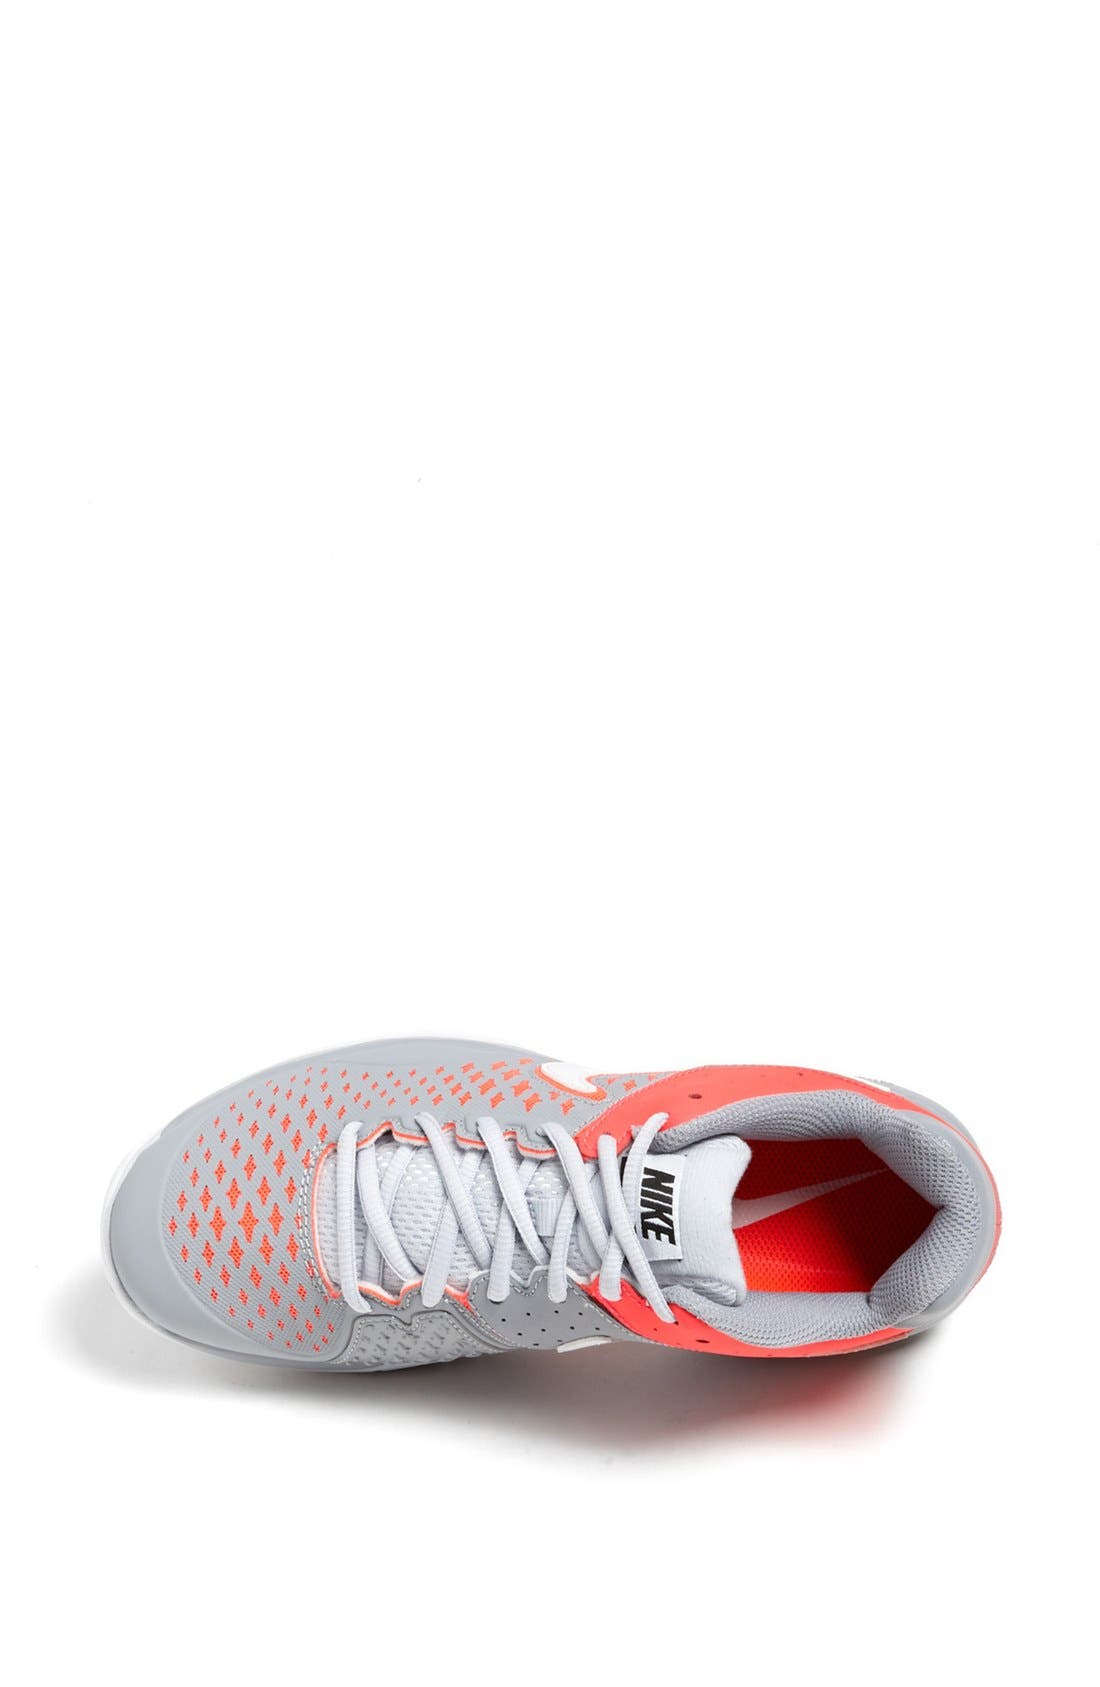 Alternate Image 3  - Nike 'Air Cage Advantage' Tennis Shoe (Women)